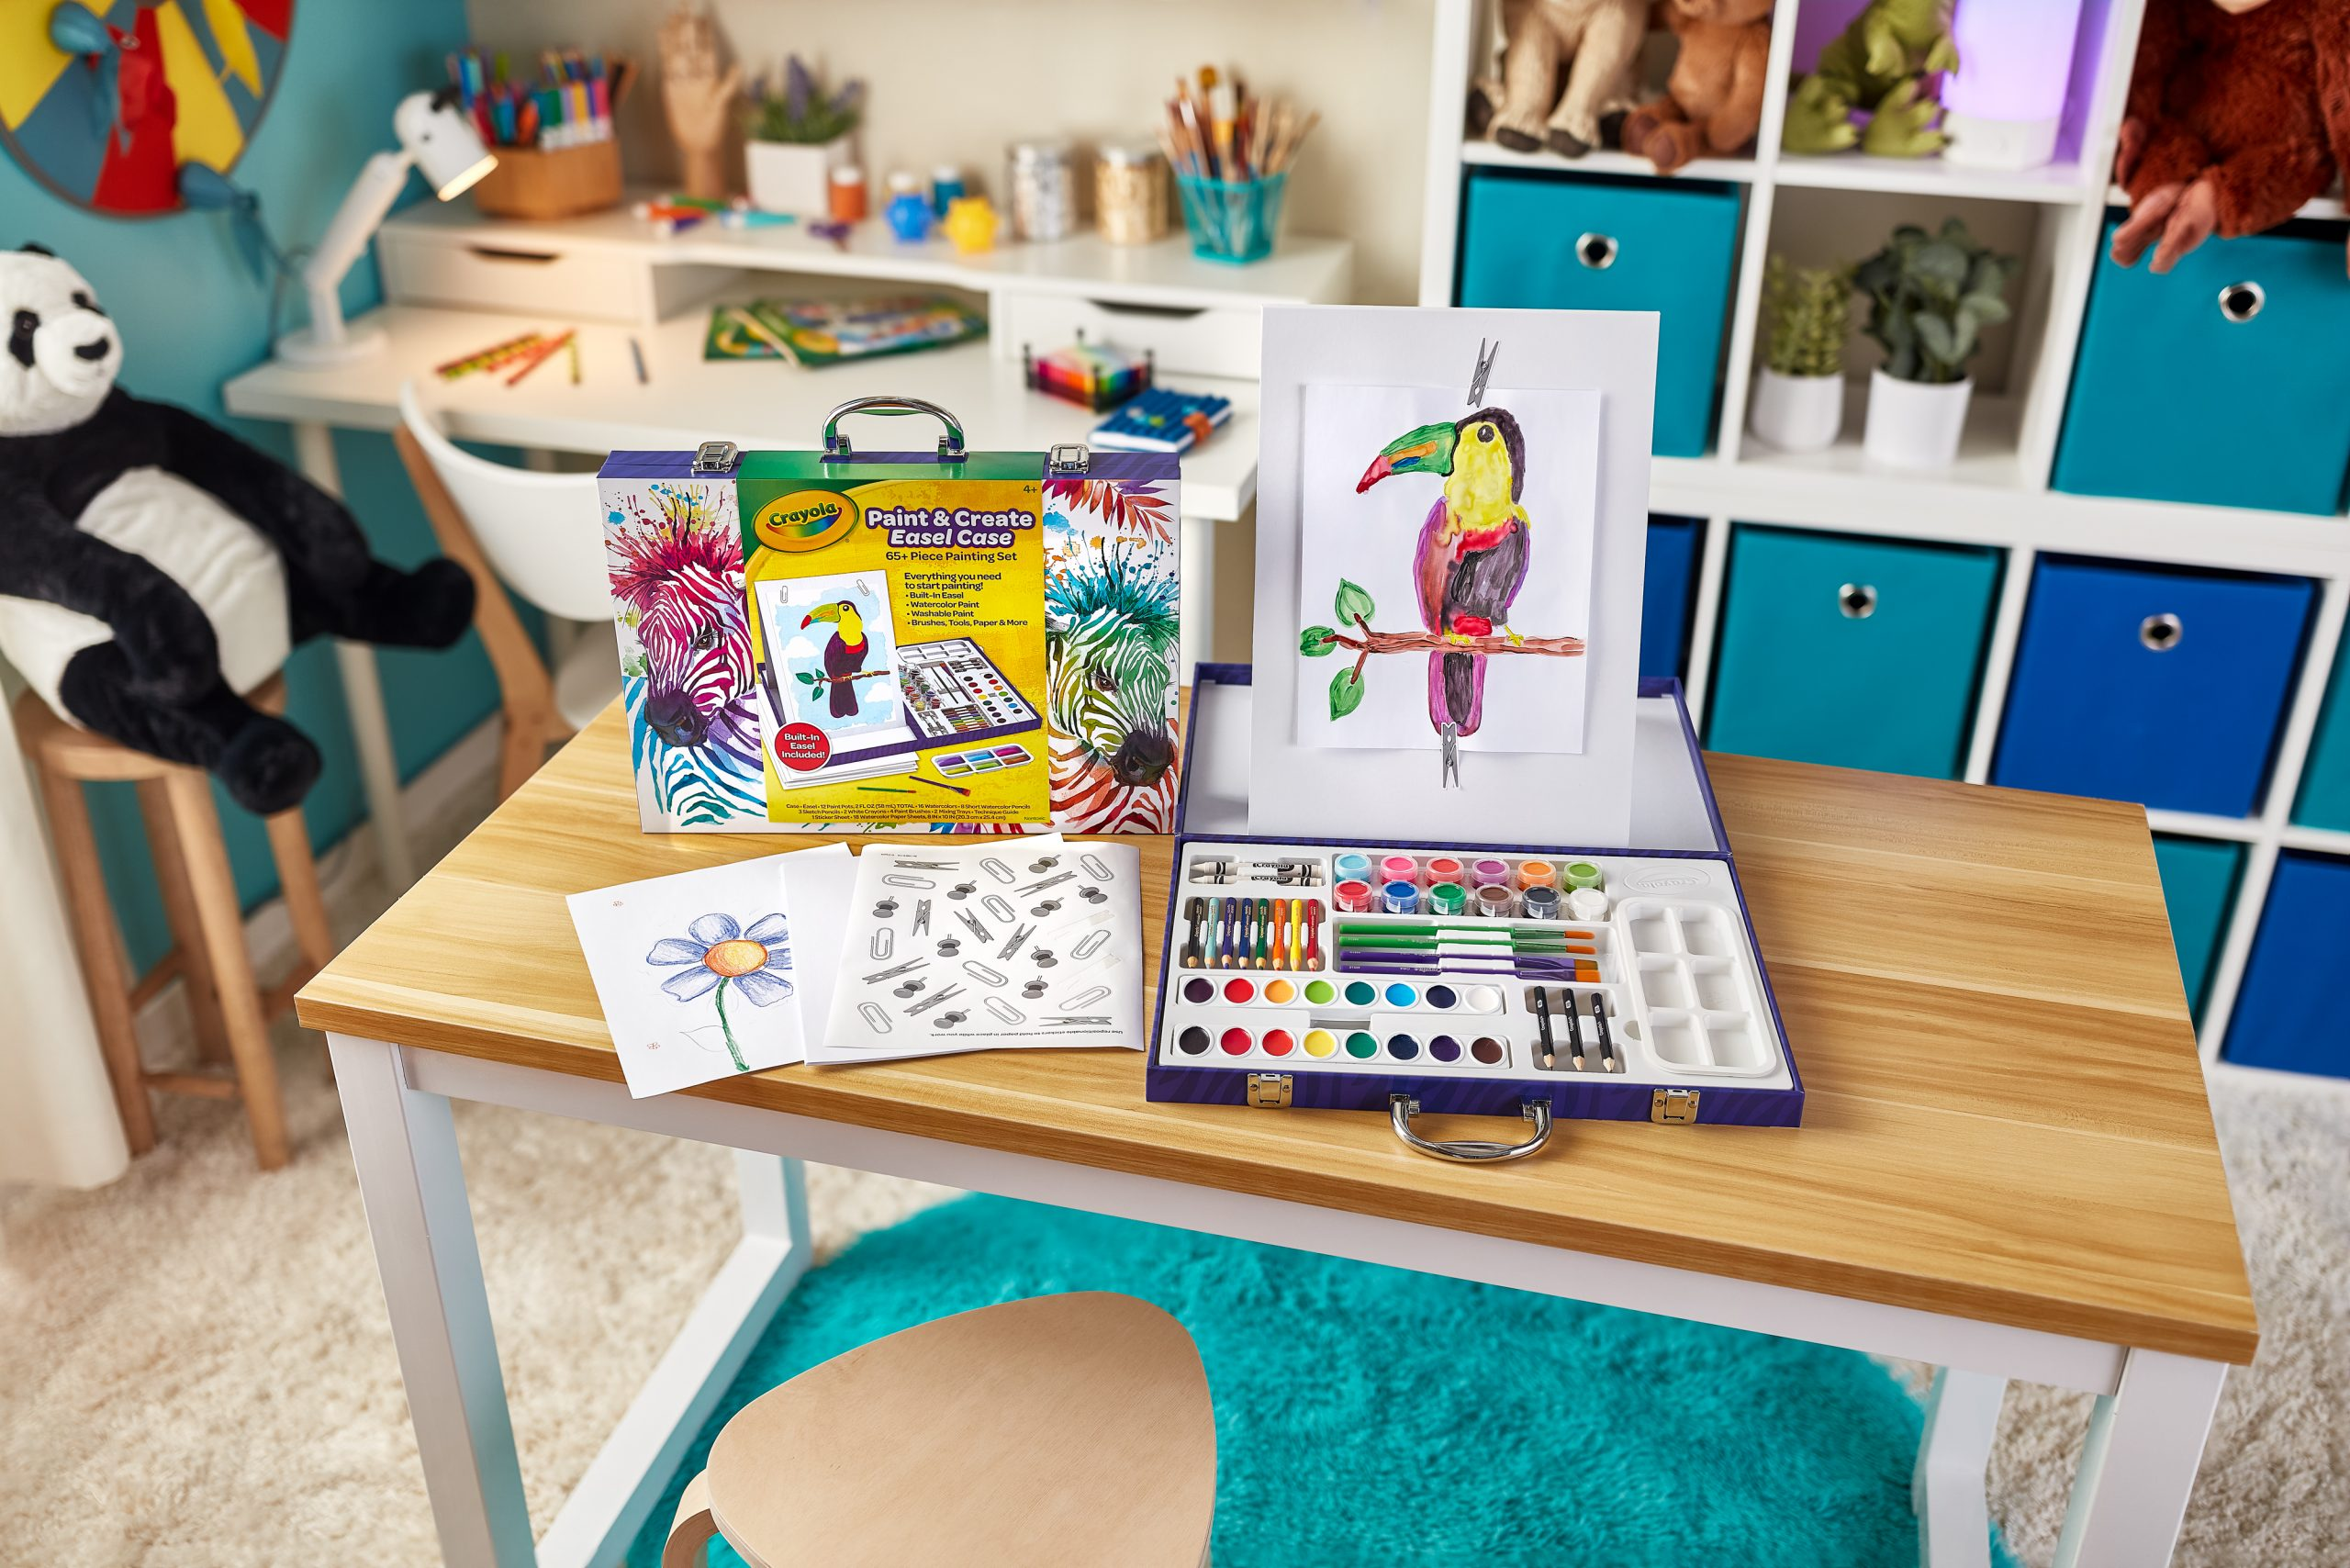 Crayola Paint and Create Easel Art Case, crayola gift ideas, school supplies, creative gift ideas, kids art themed gifts, sweet suite at home